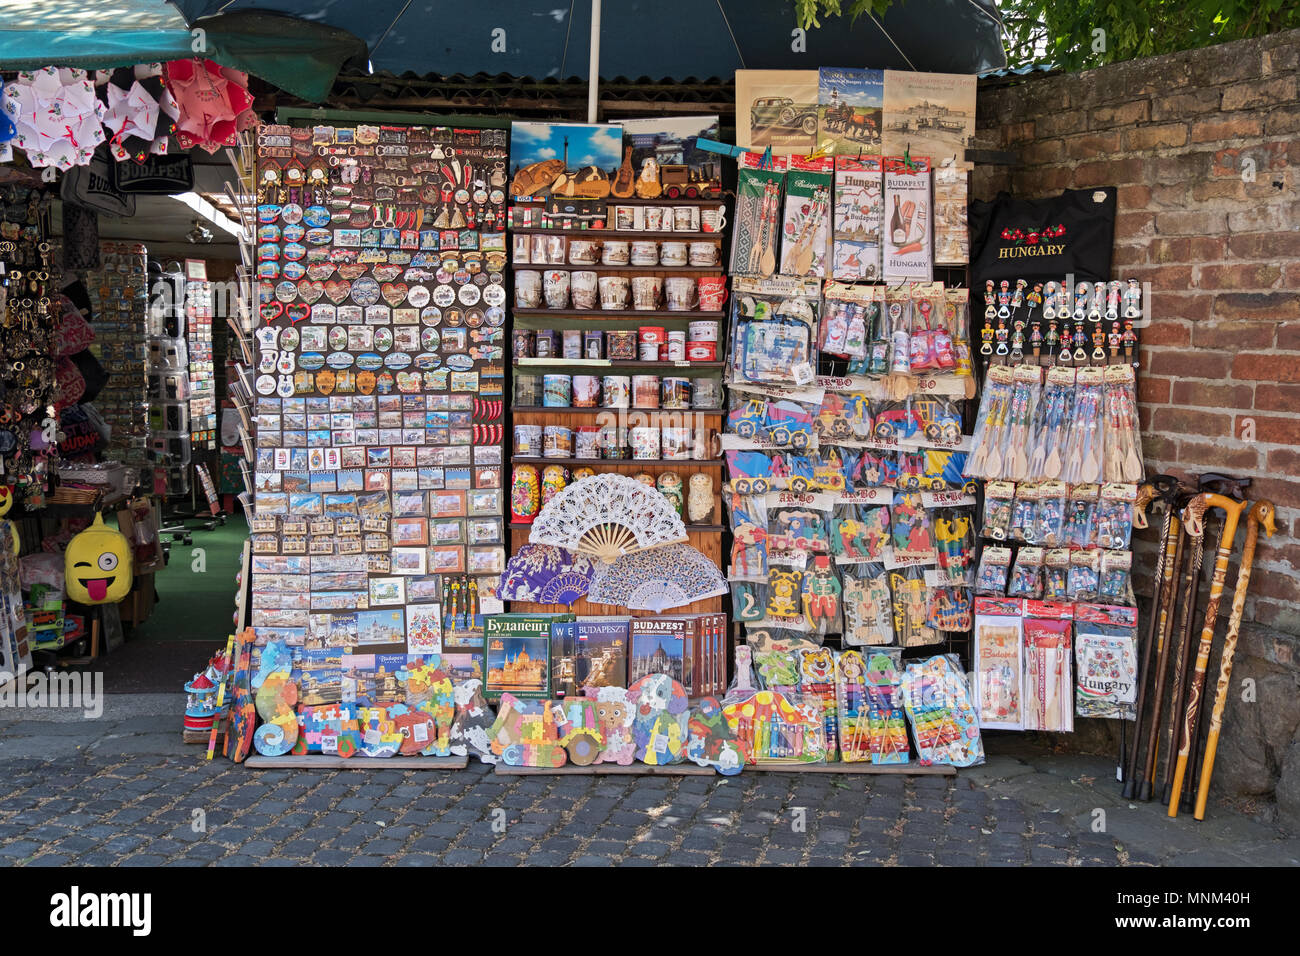 A stand selling gits and tchotkes - cheap inexpensive souvenirs - at Skanzen, a market in Szentendre, outside of Budapest, Hungary. - Stock Image